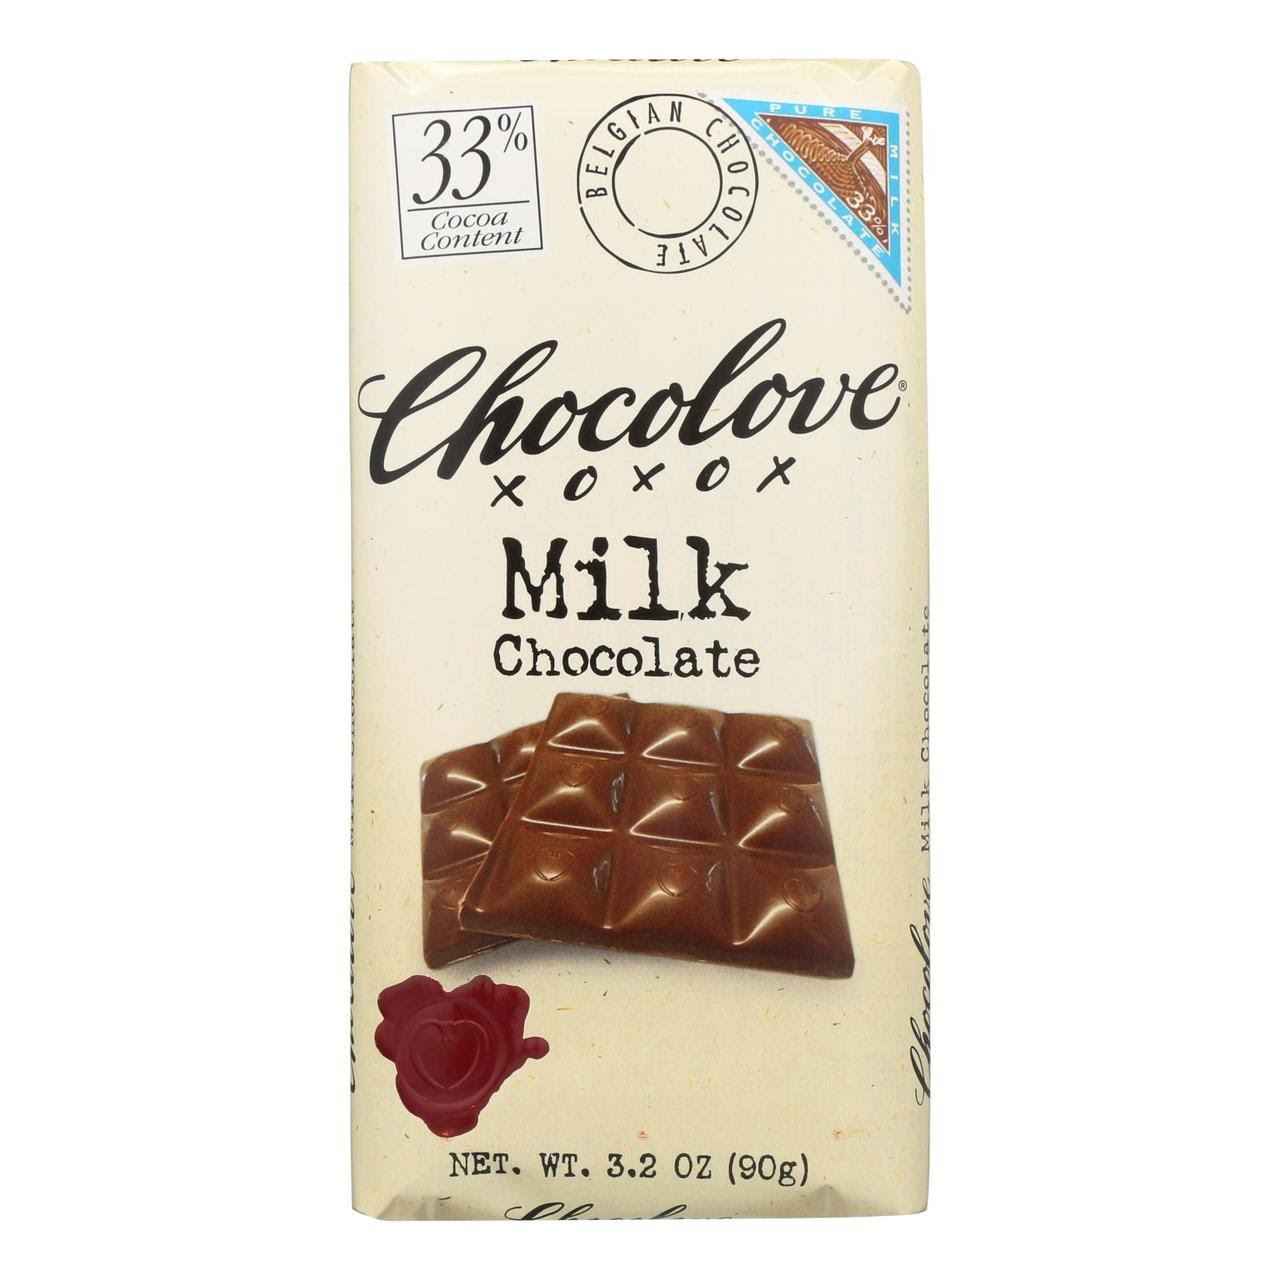 Chocolove Milk Chocolate